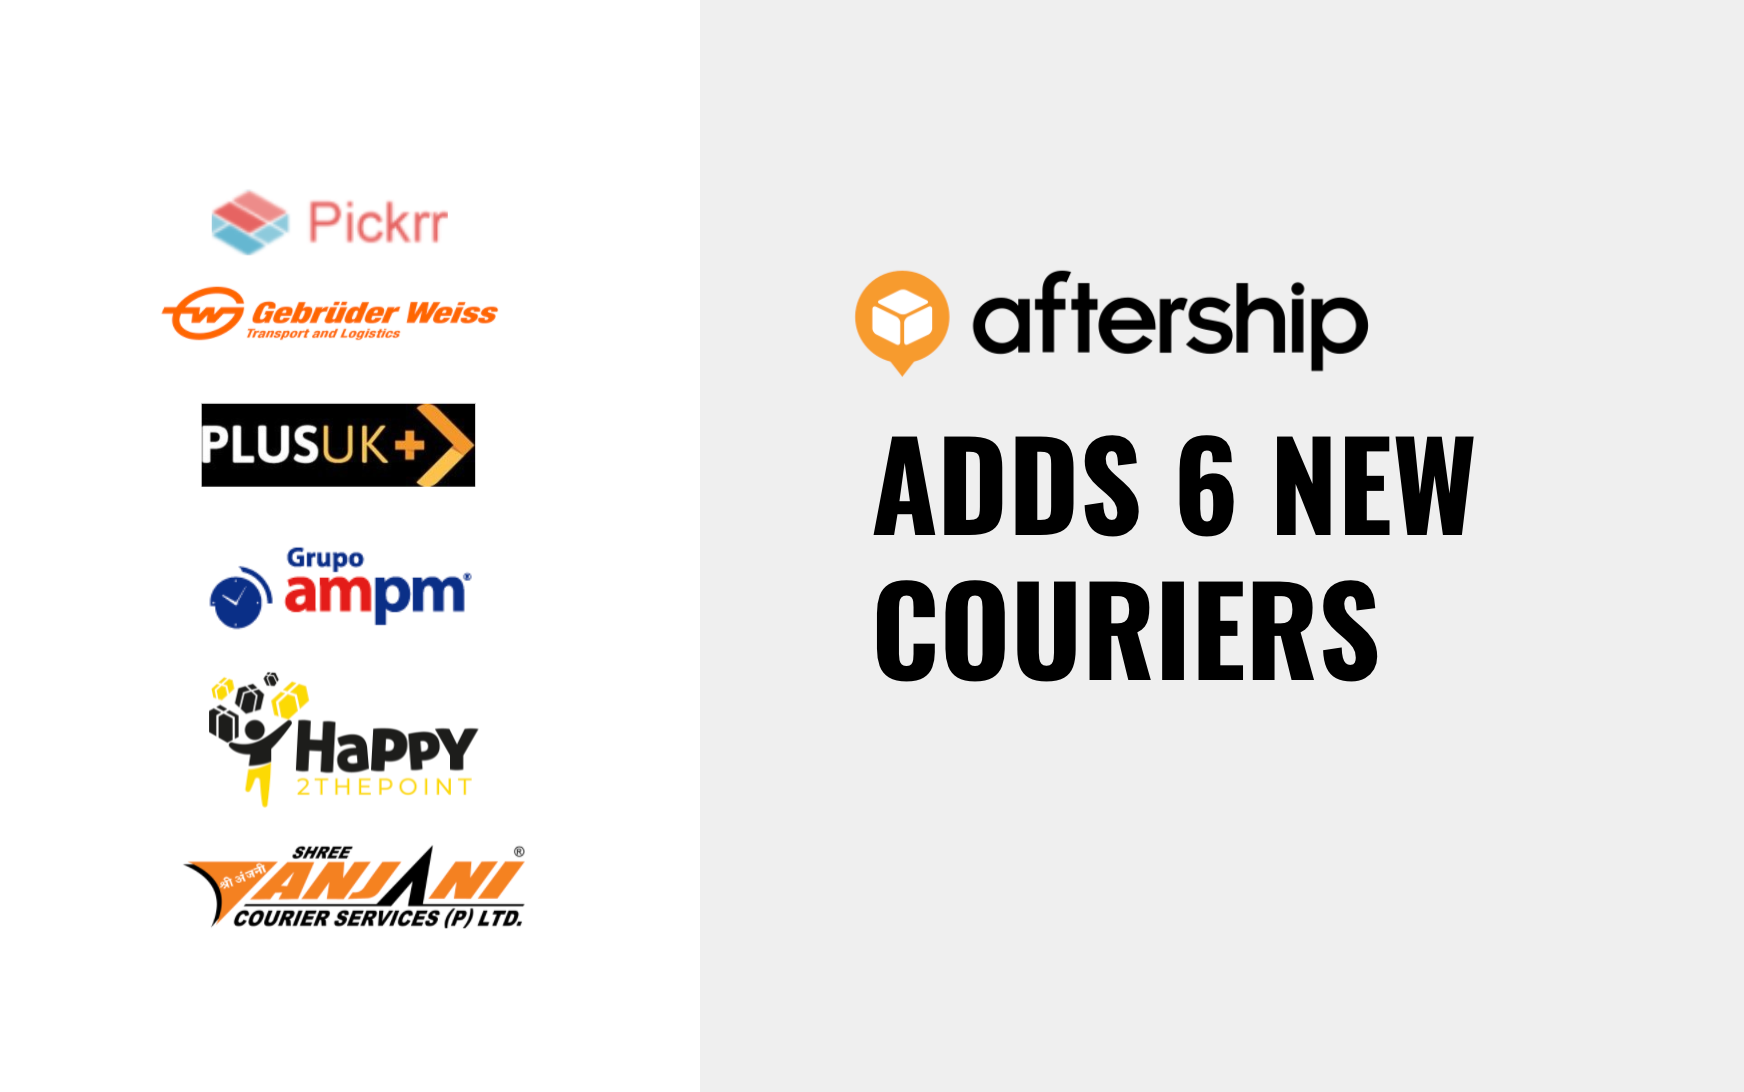 AfterShip adds 6 new couriers between 26th July 2021 and 8th August 2021